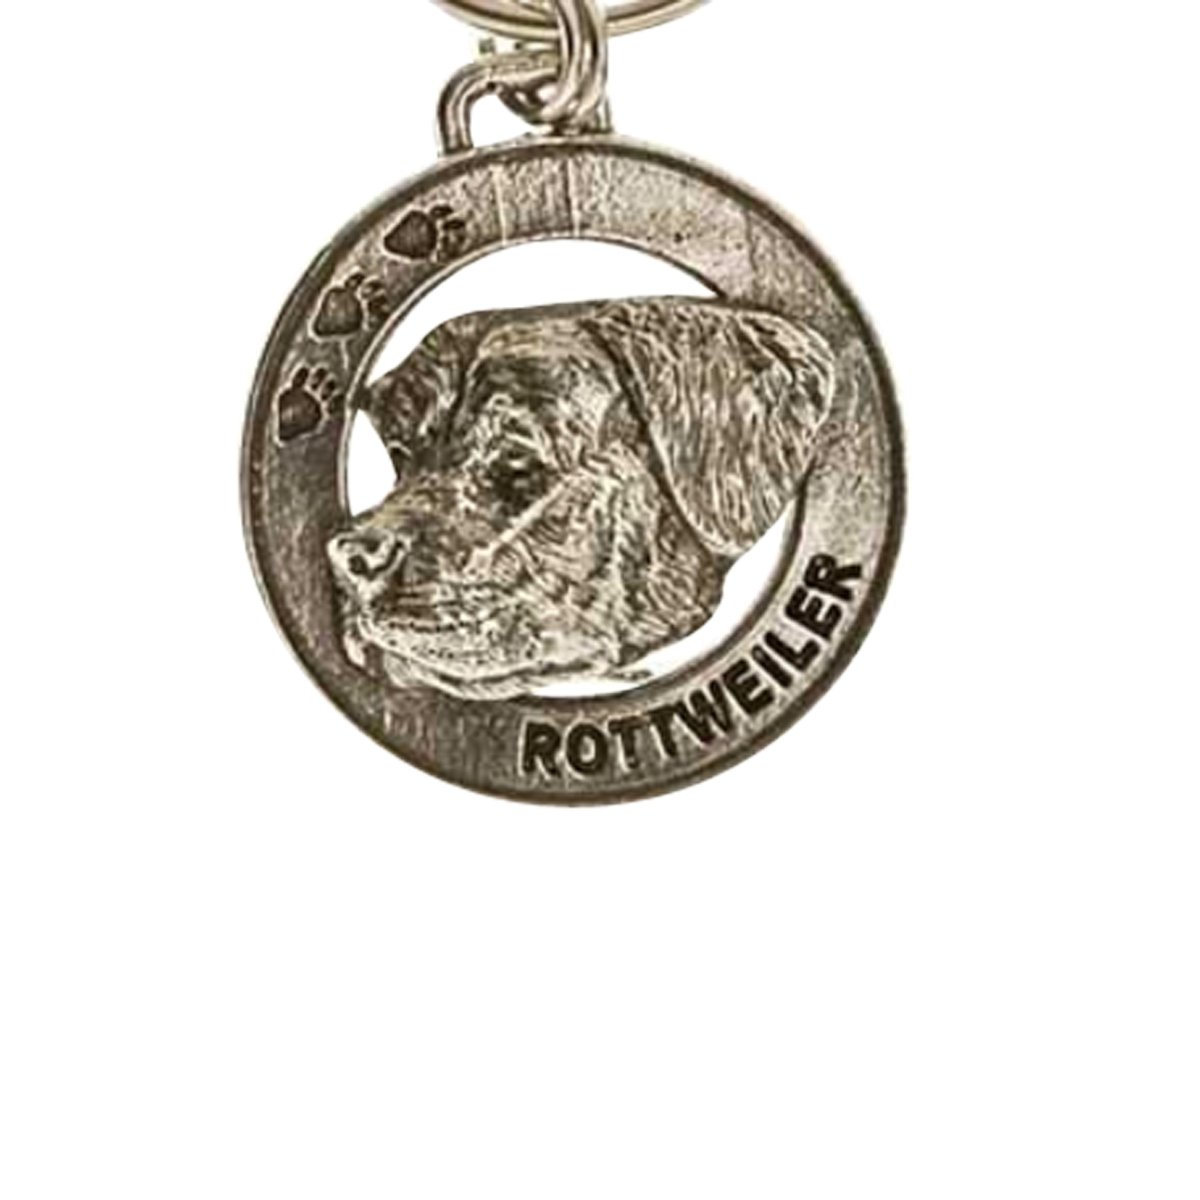 Creative Pewter Designs, Pewter Rottweiler Key Chain, Antiqued Finish, DK150